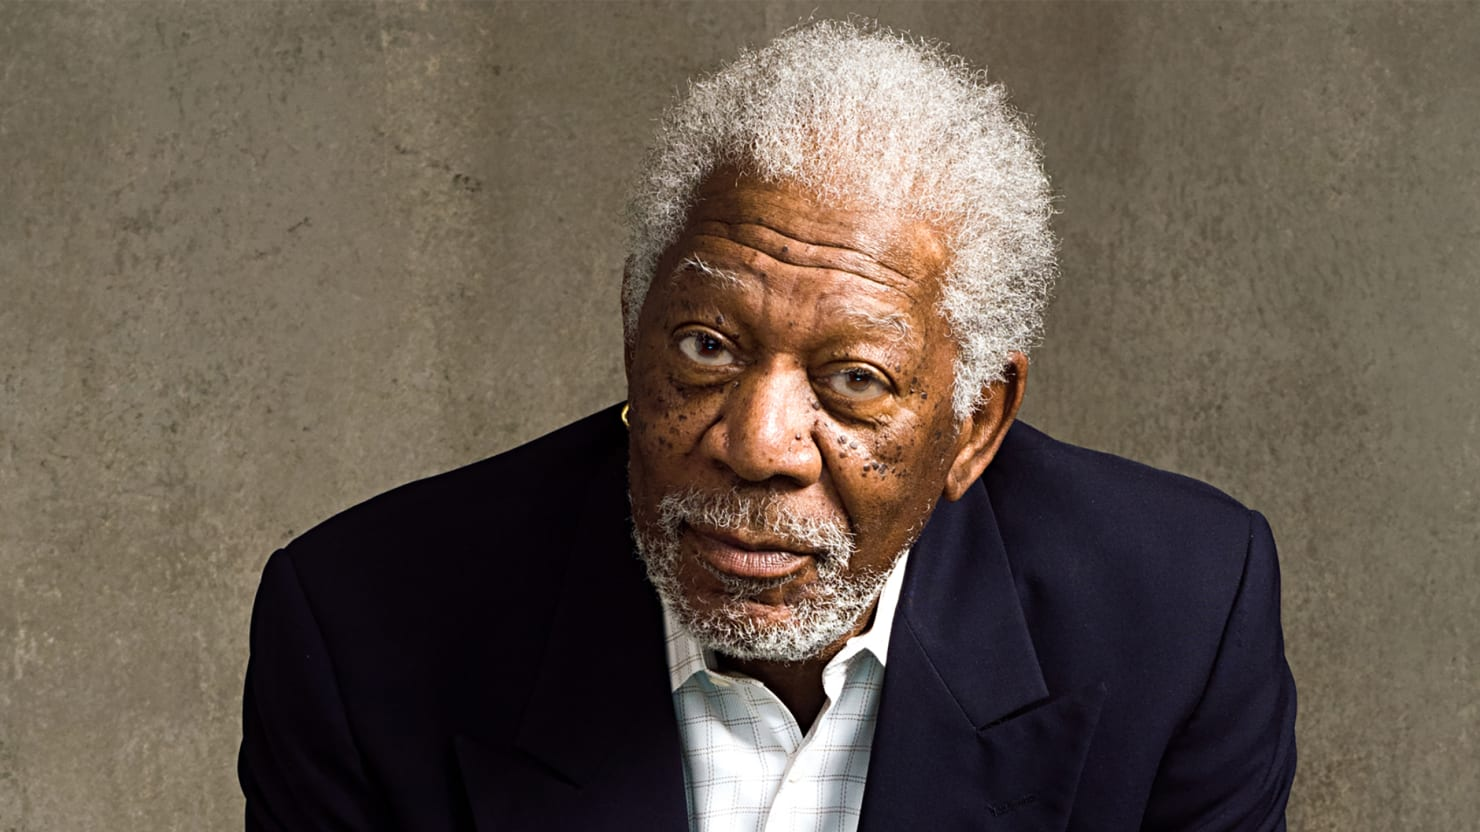 Morgan Freeman on Religion, Science, and the Story of God